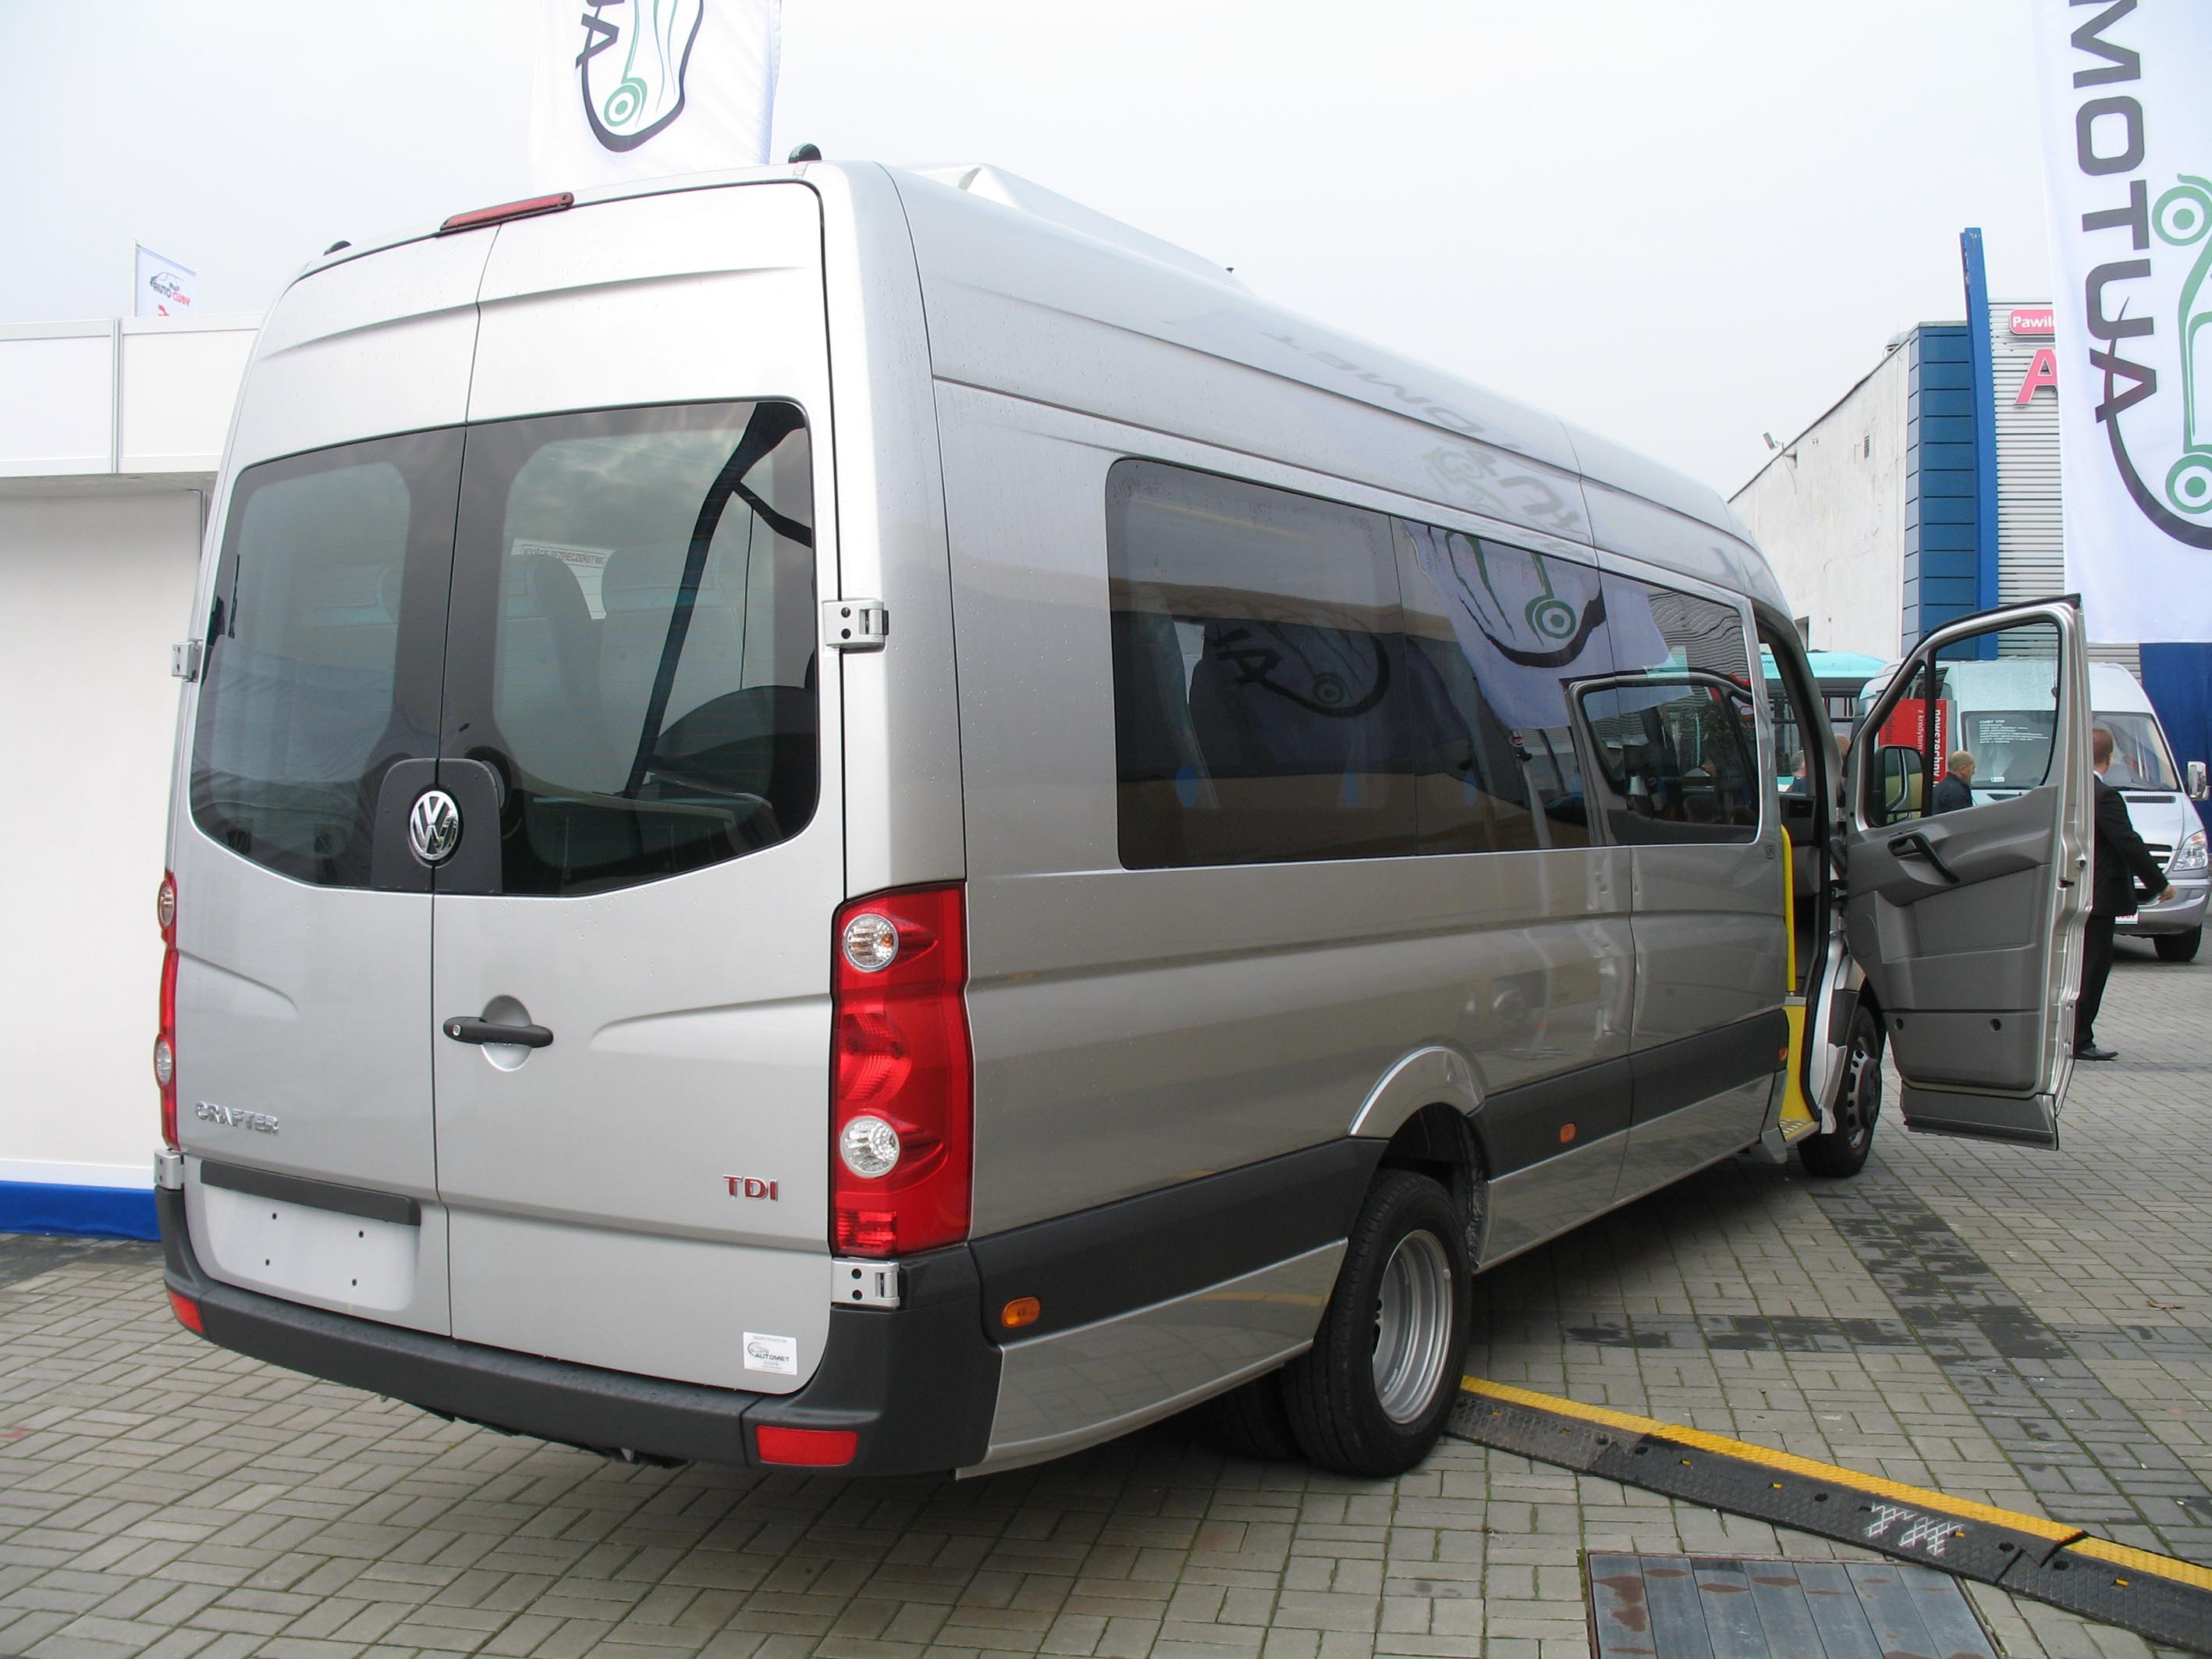 New Volkswagen Bus >> File:Automet VW Crafter TDI end.jpg - Wikimedia Commons